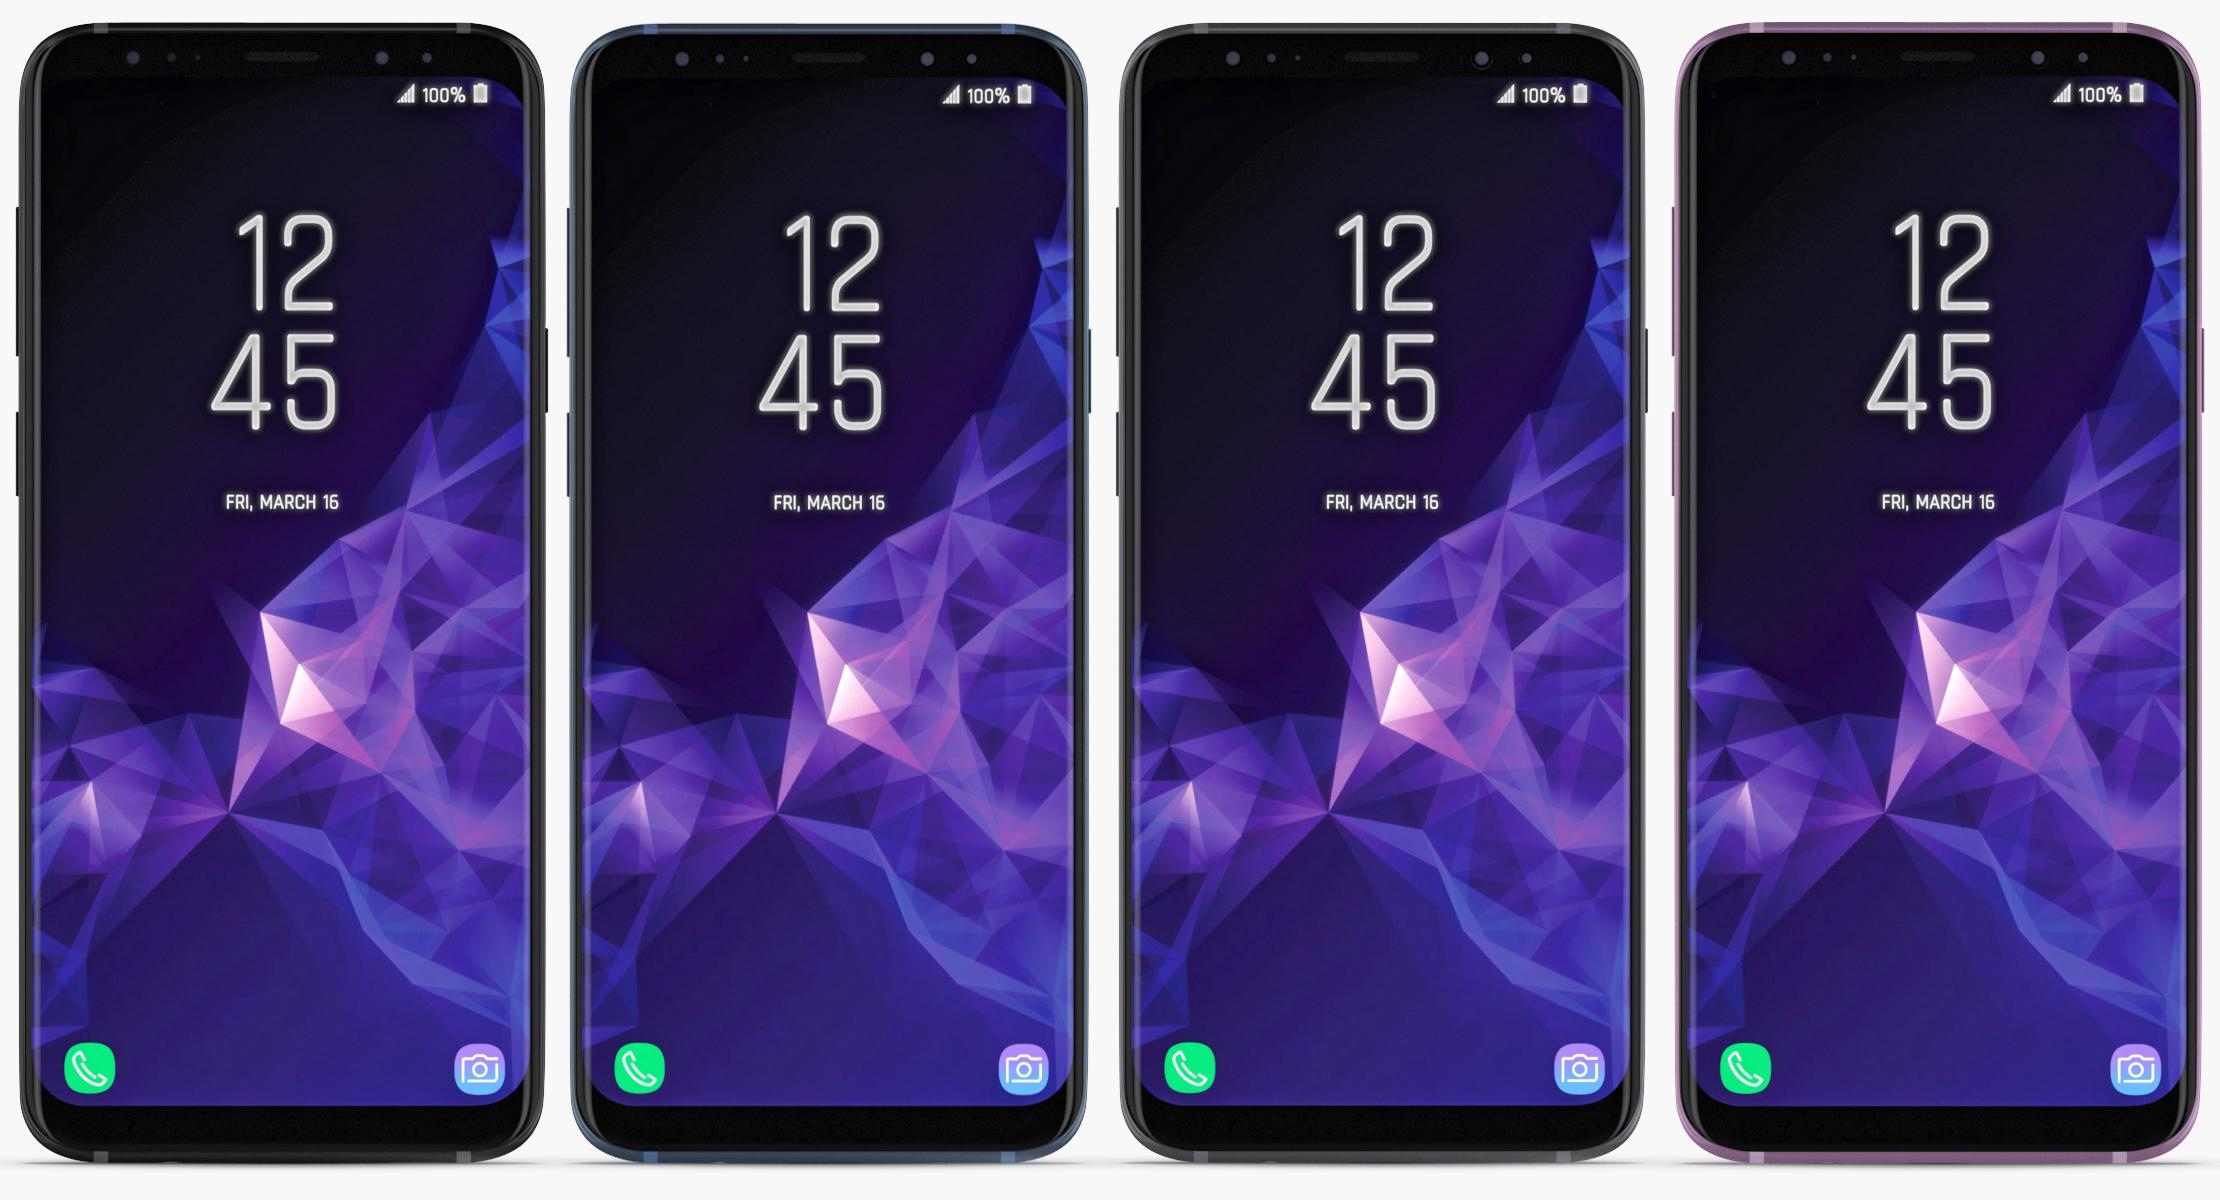 Samsung Galaxy S9 & S9+ (ALL COLORS) - reel 2